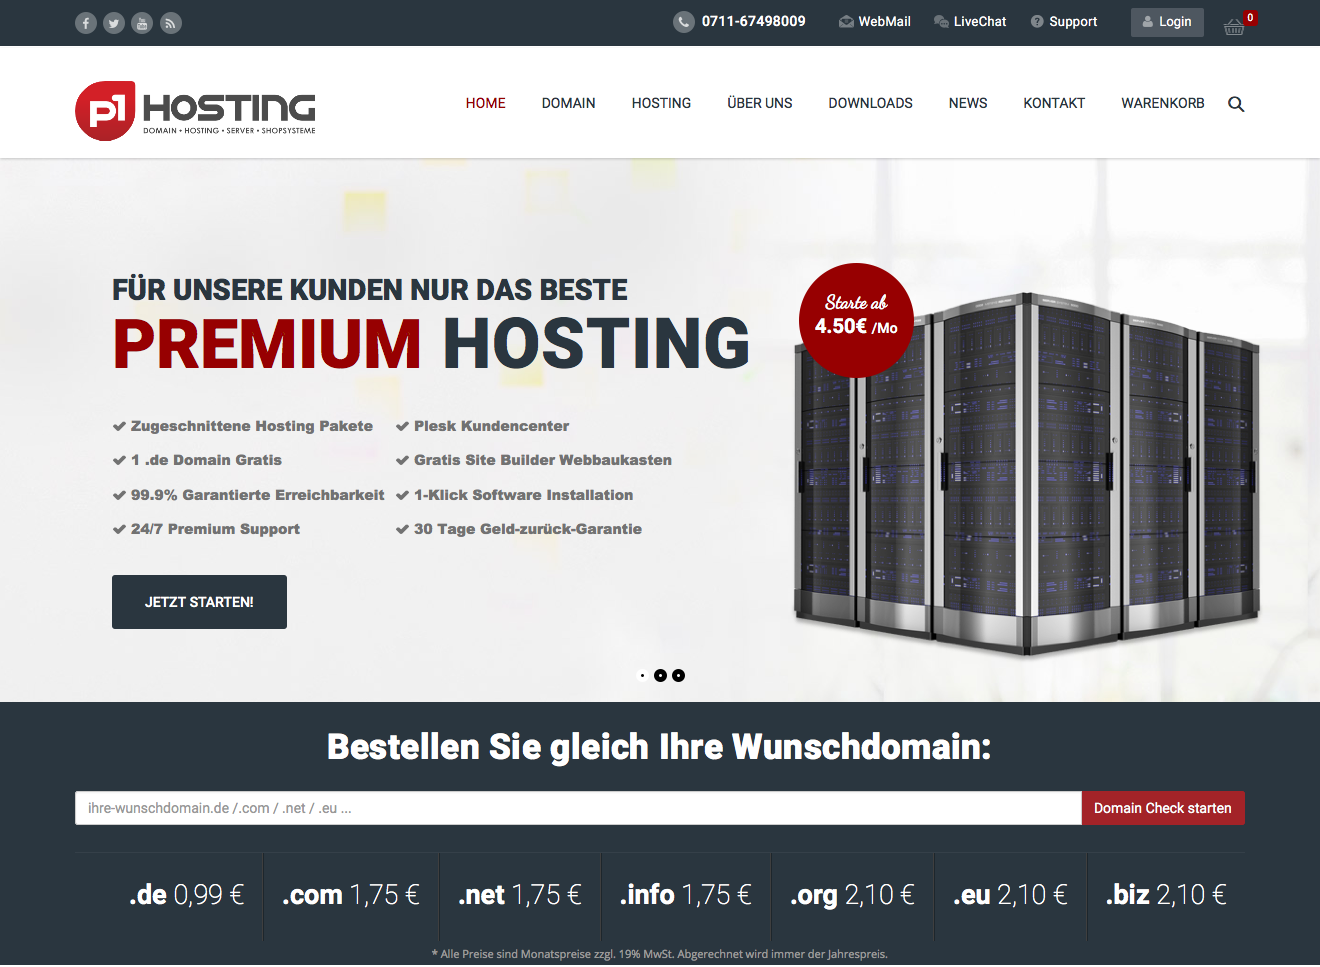 Website-Relaunch von p1Hosting.de